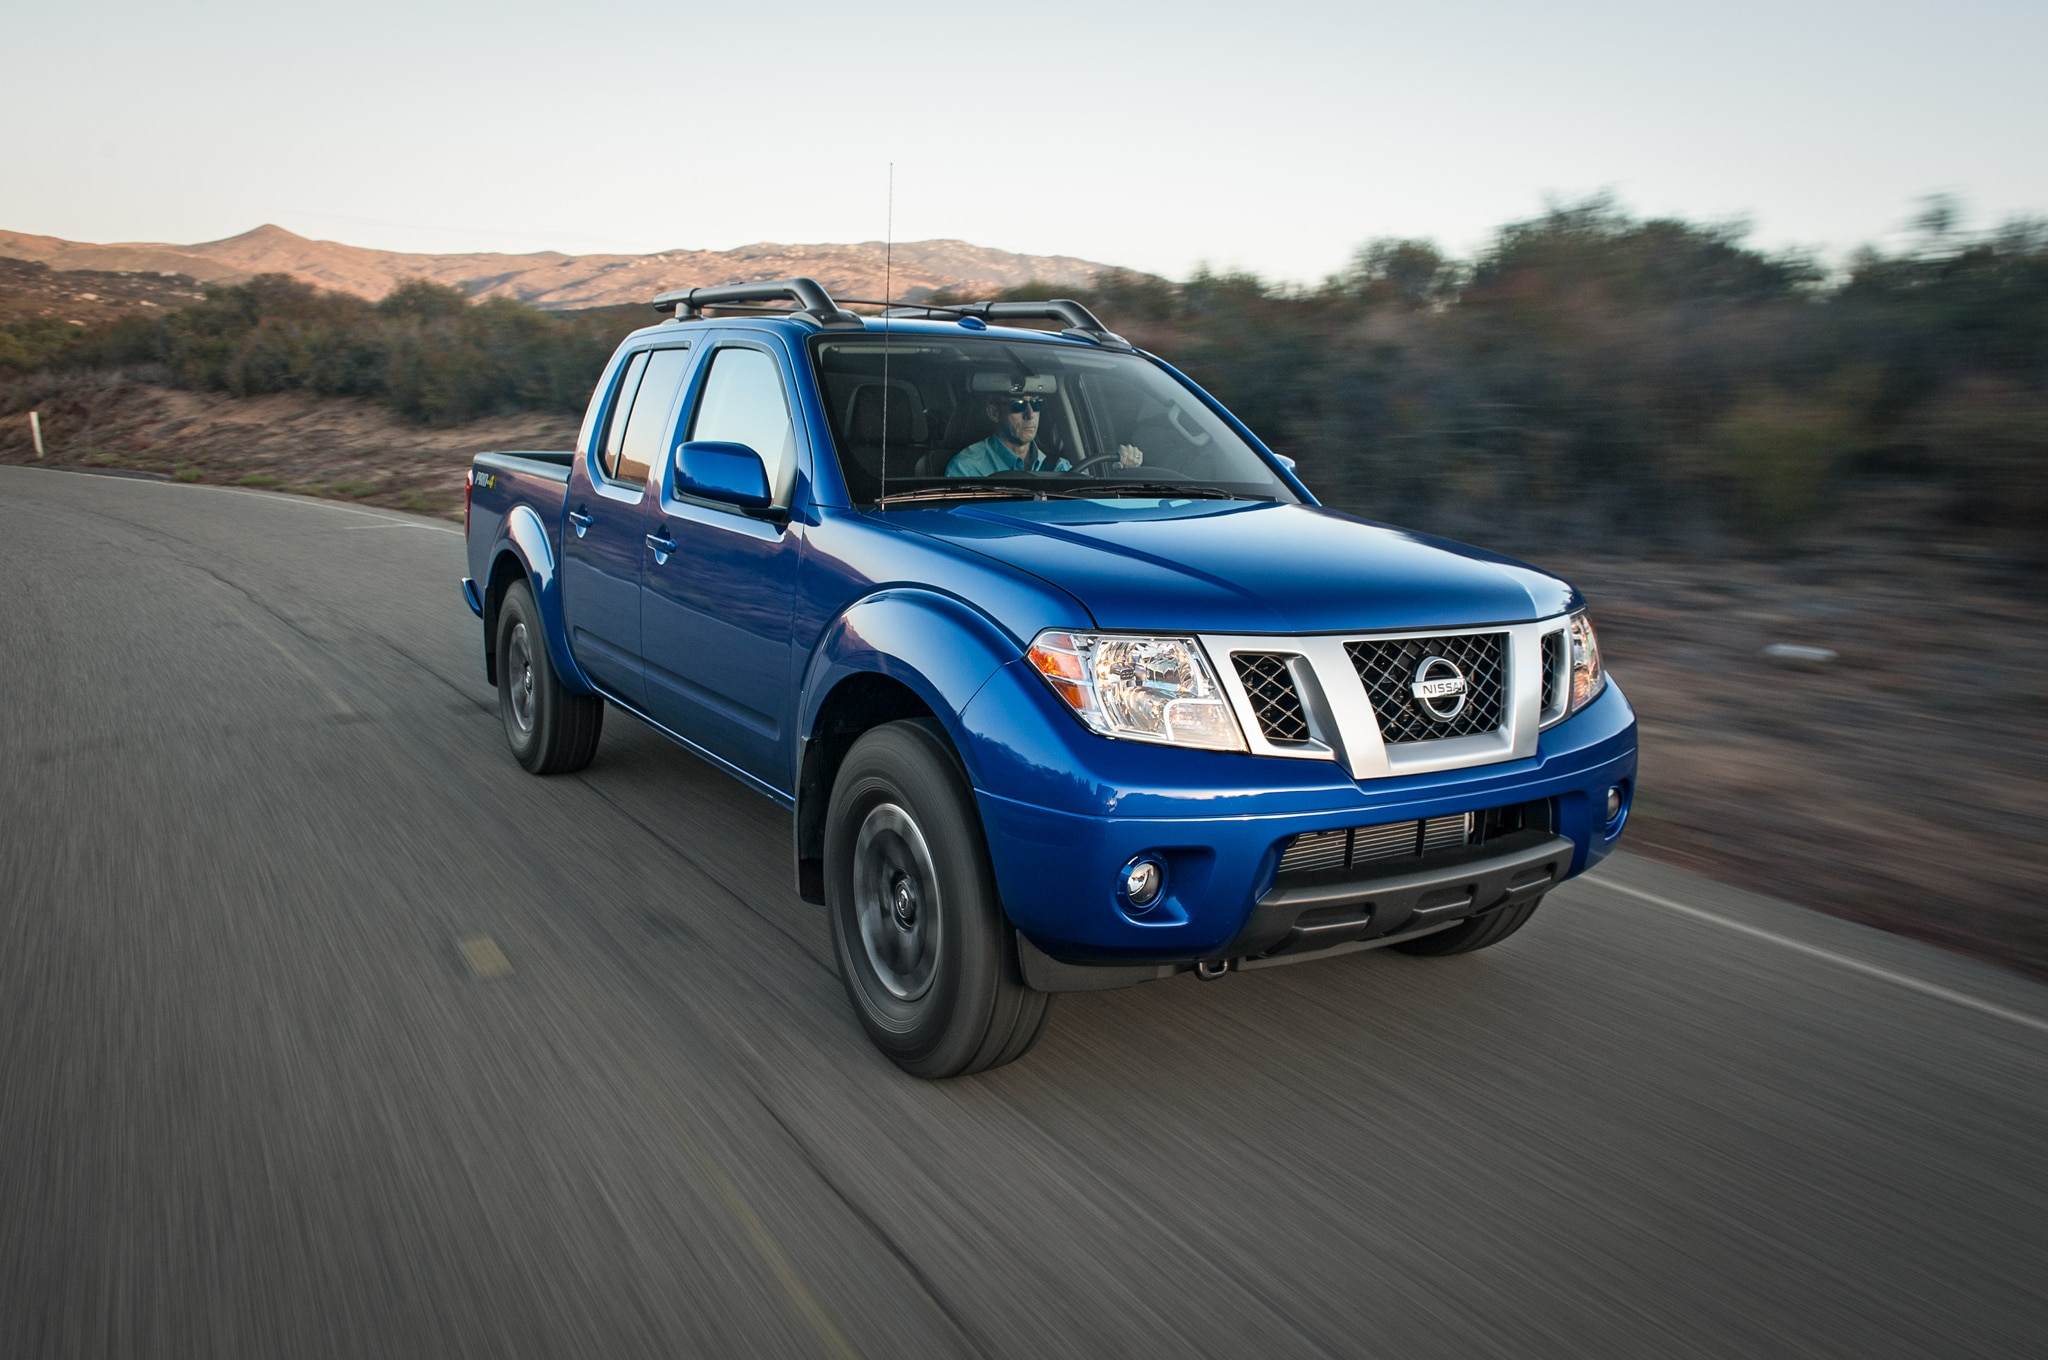 2018 Nissan Frontier King Cab >> 2015 Nissan Frontier, Xterra to Cost $18,850 and $24,520, Respectively